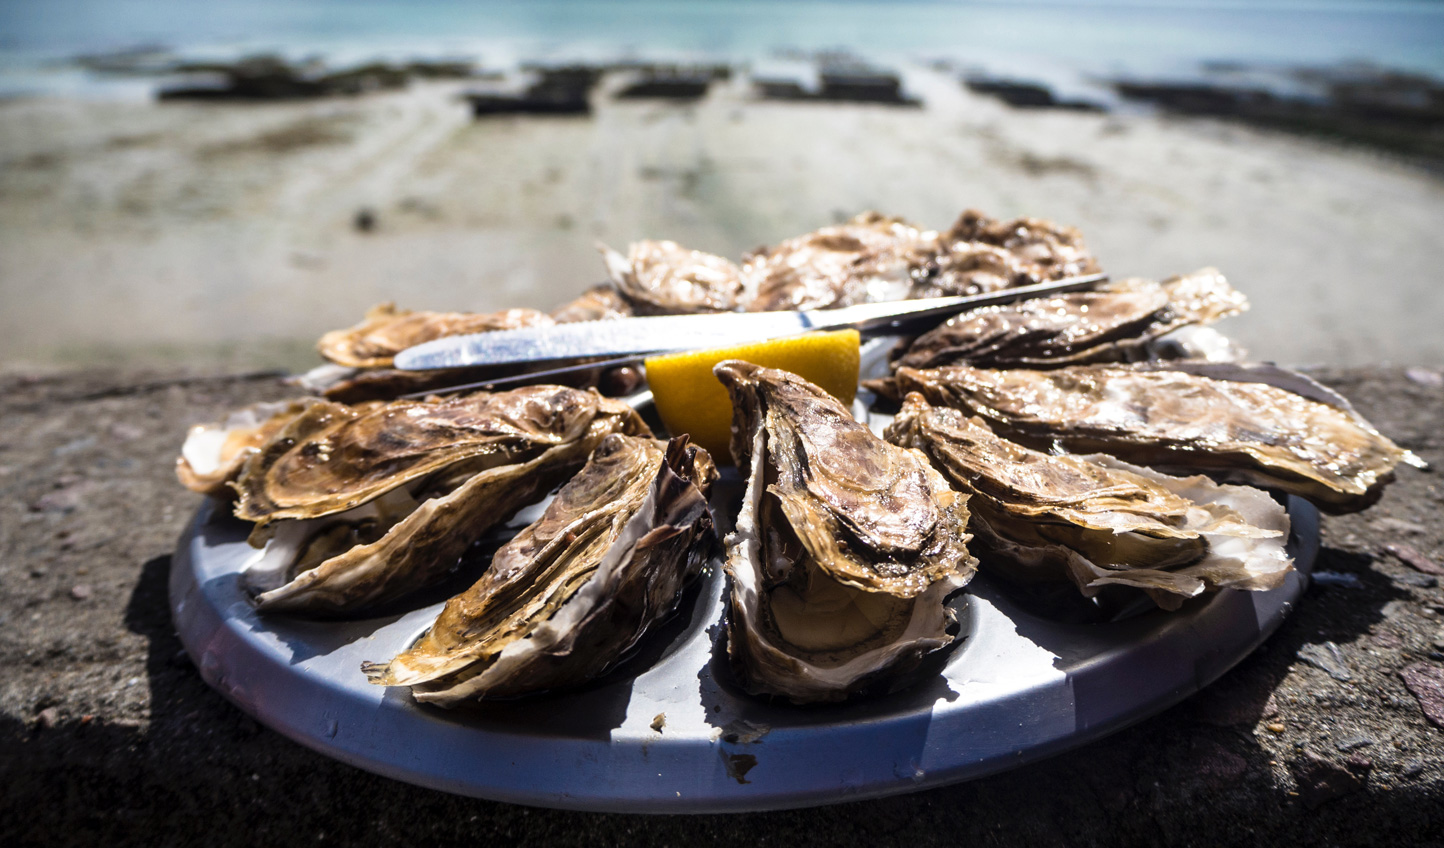 Freshly shucked oysters add a touch of luxury